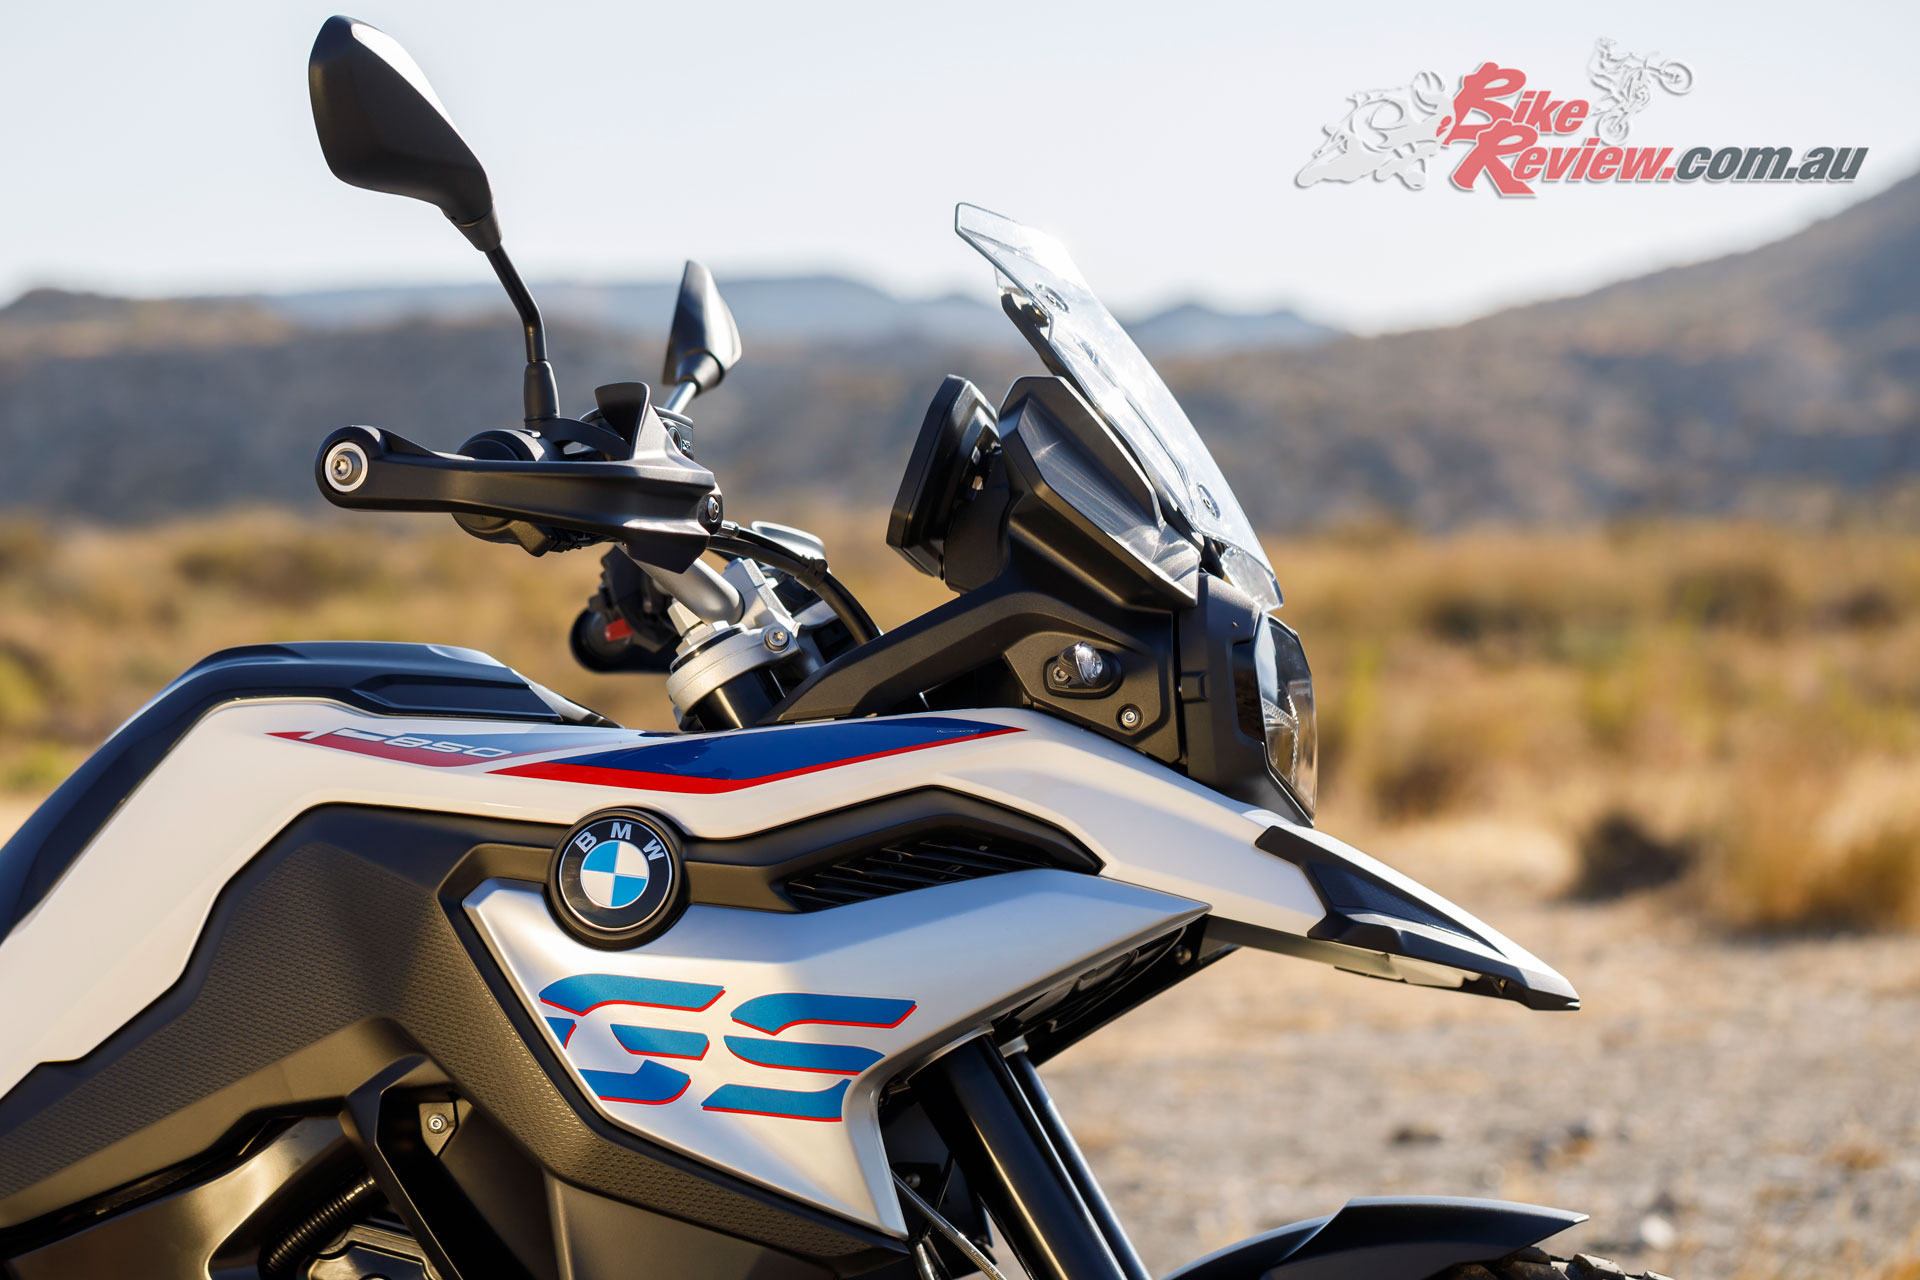 Styling for the 2019 BMW F 850 GS is a standout particularly with beefy semi-knobby tyres